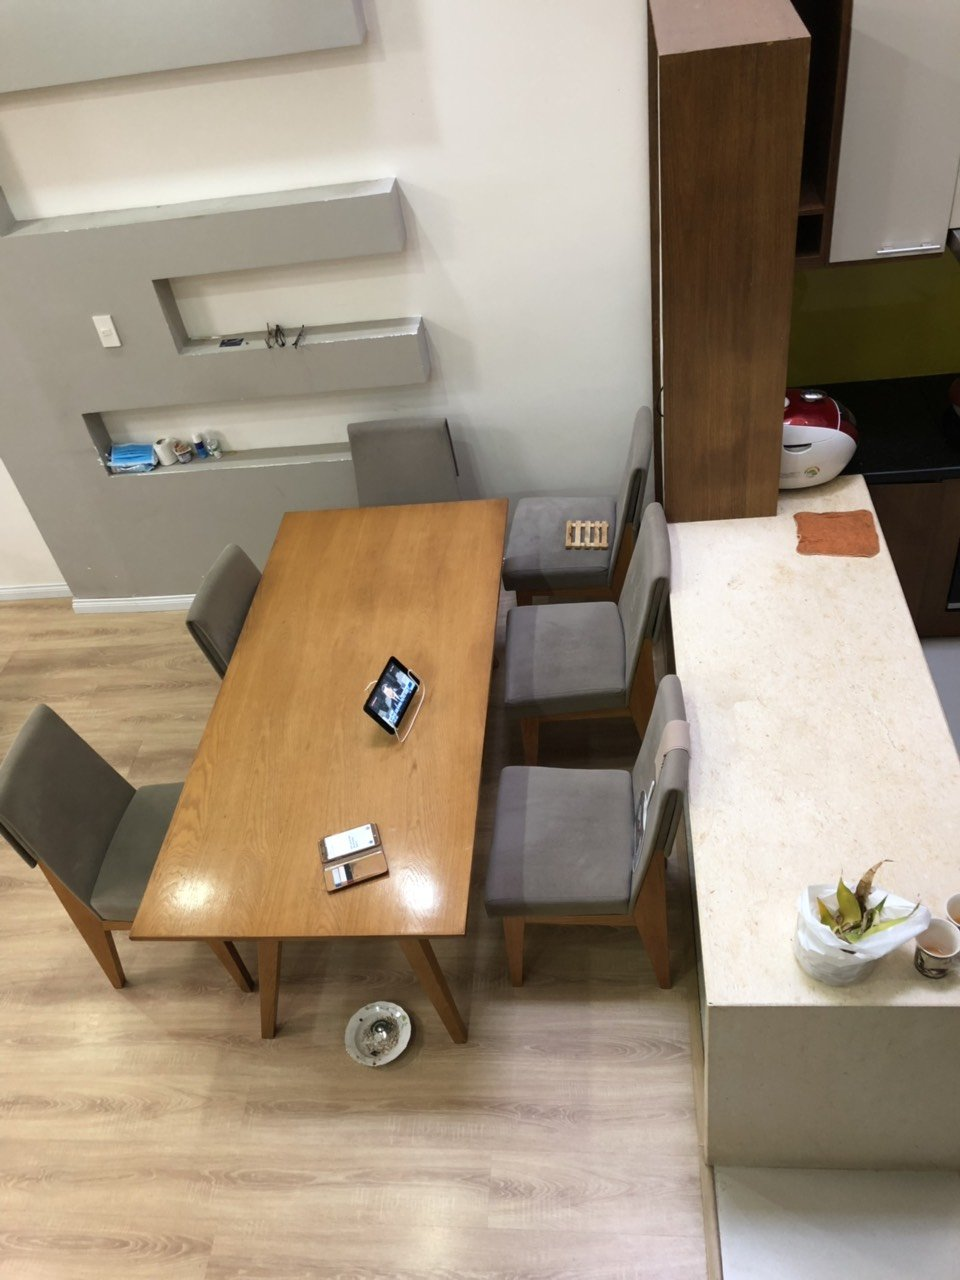 4 bedroom house for rent in Son Tra Da Nang